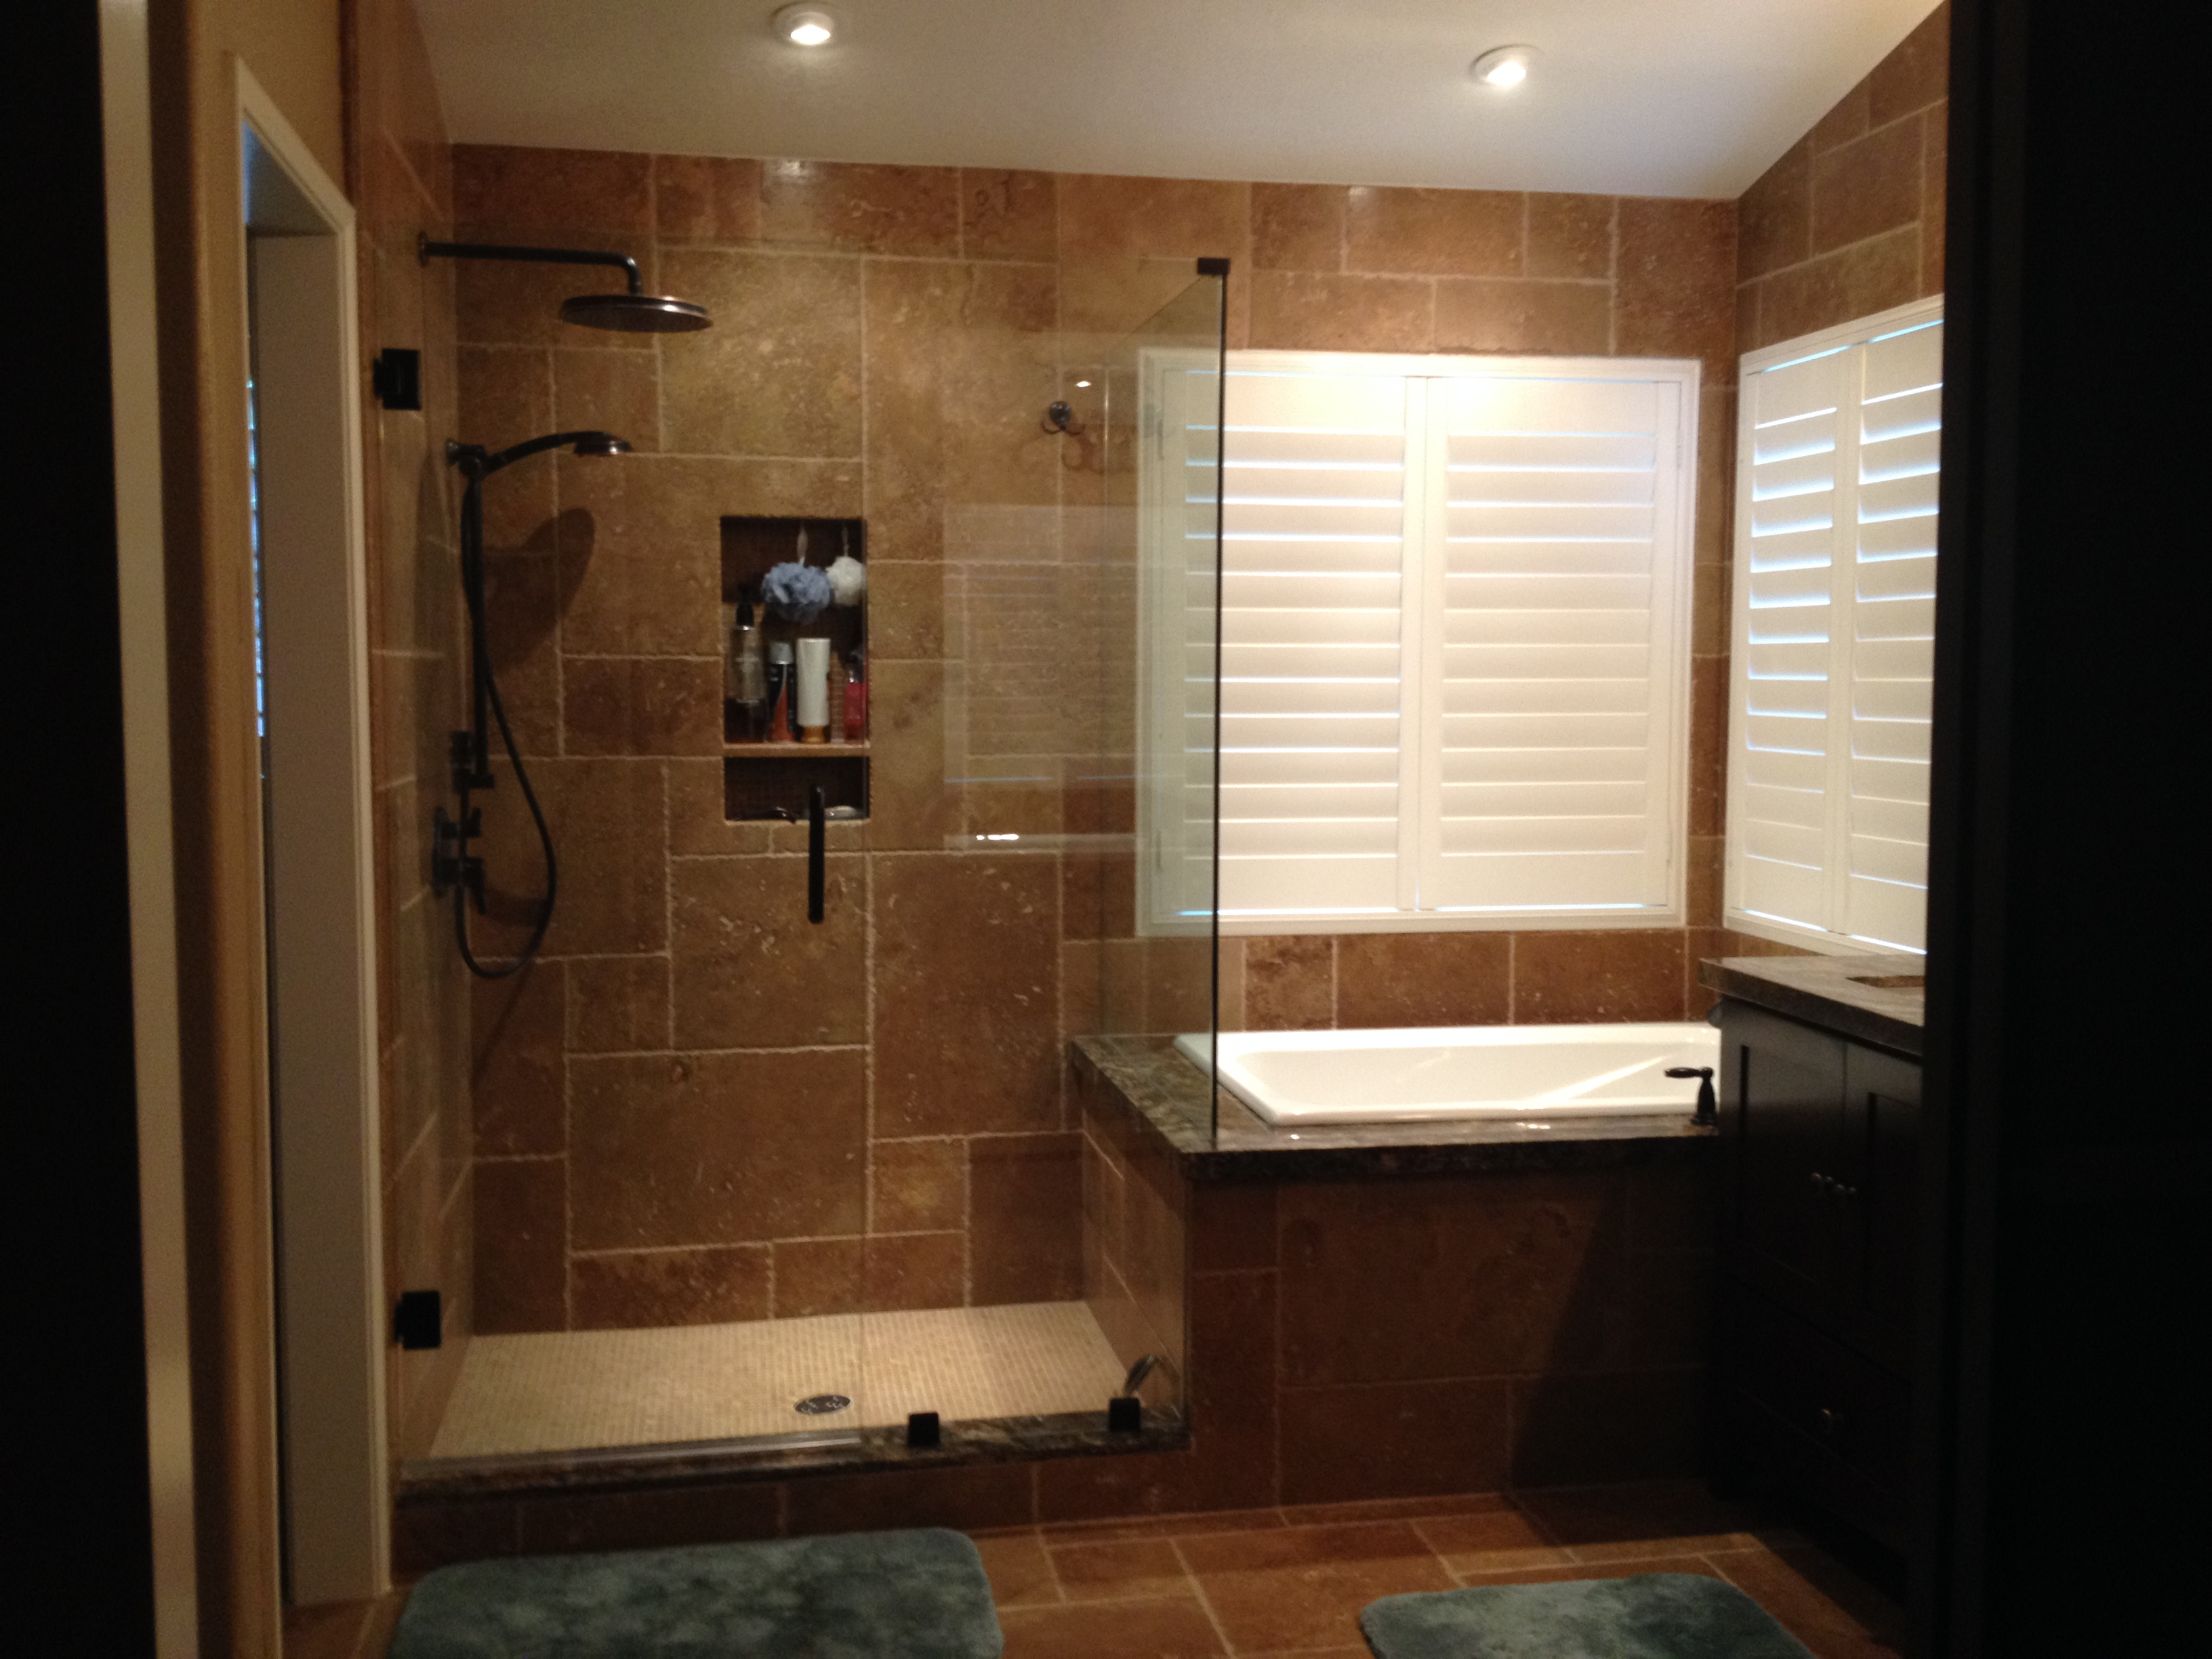 bathroom contractors trends for remodel remodeling a r homeadvisor preparing